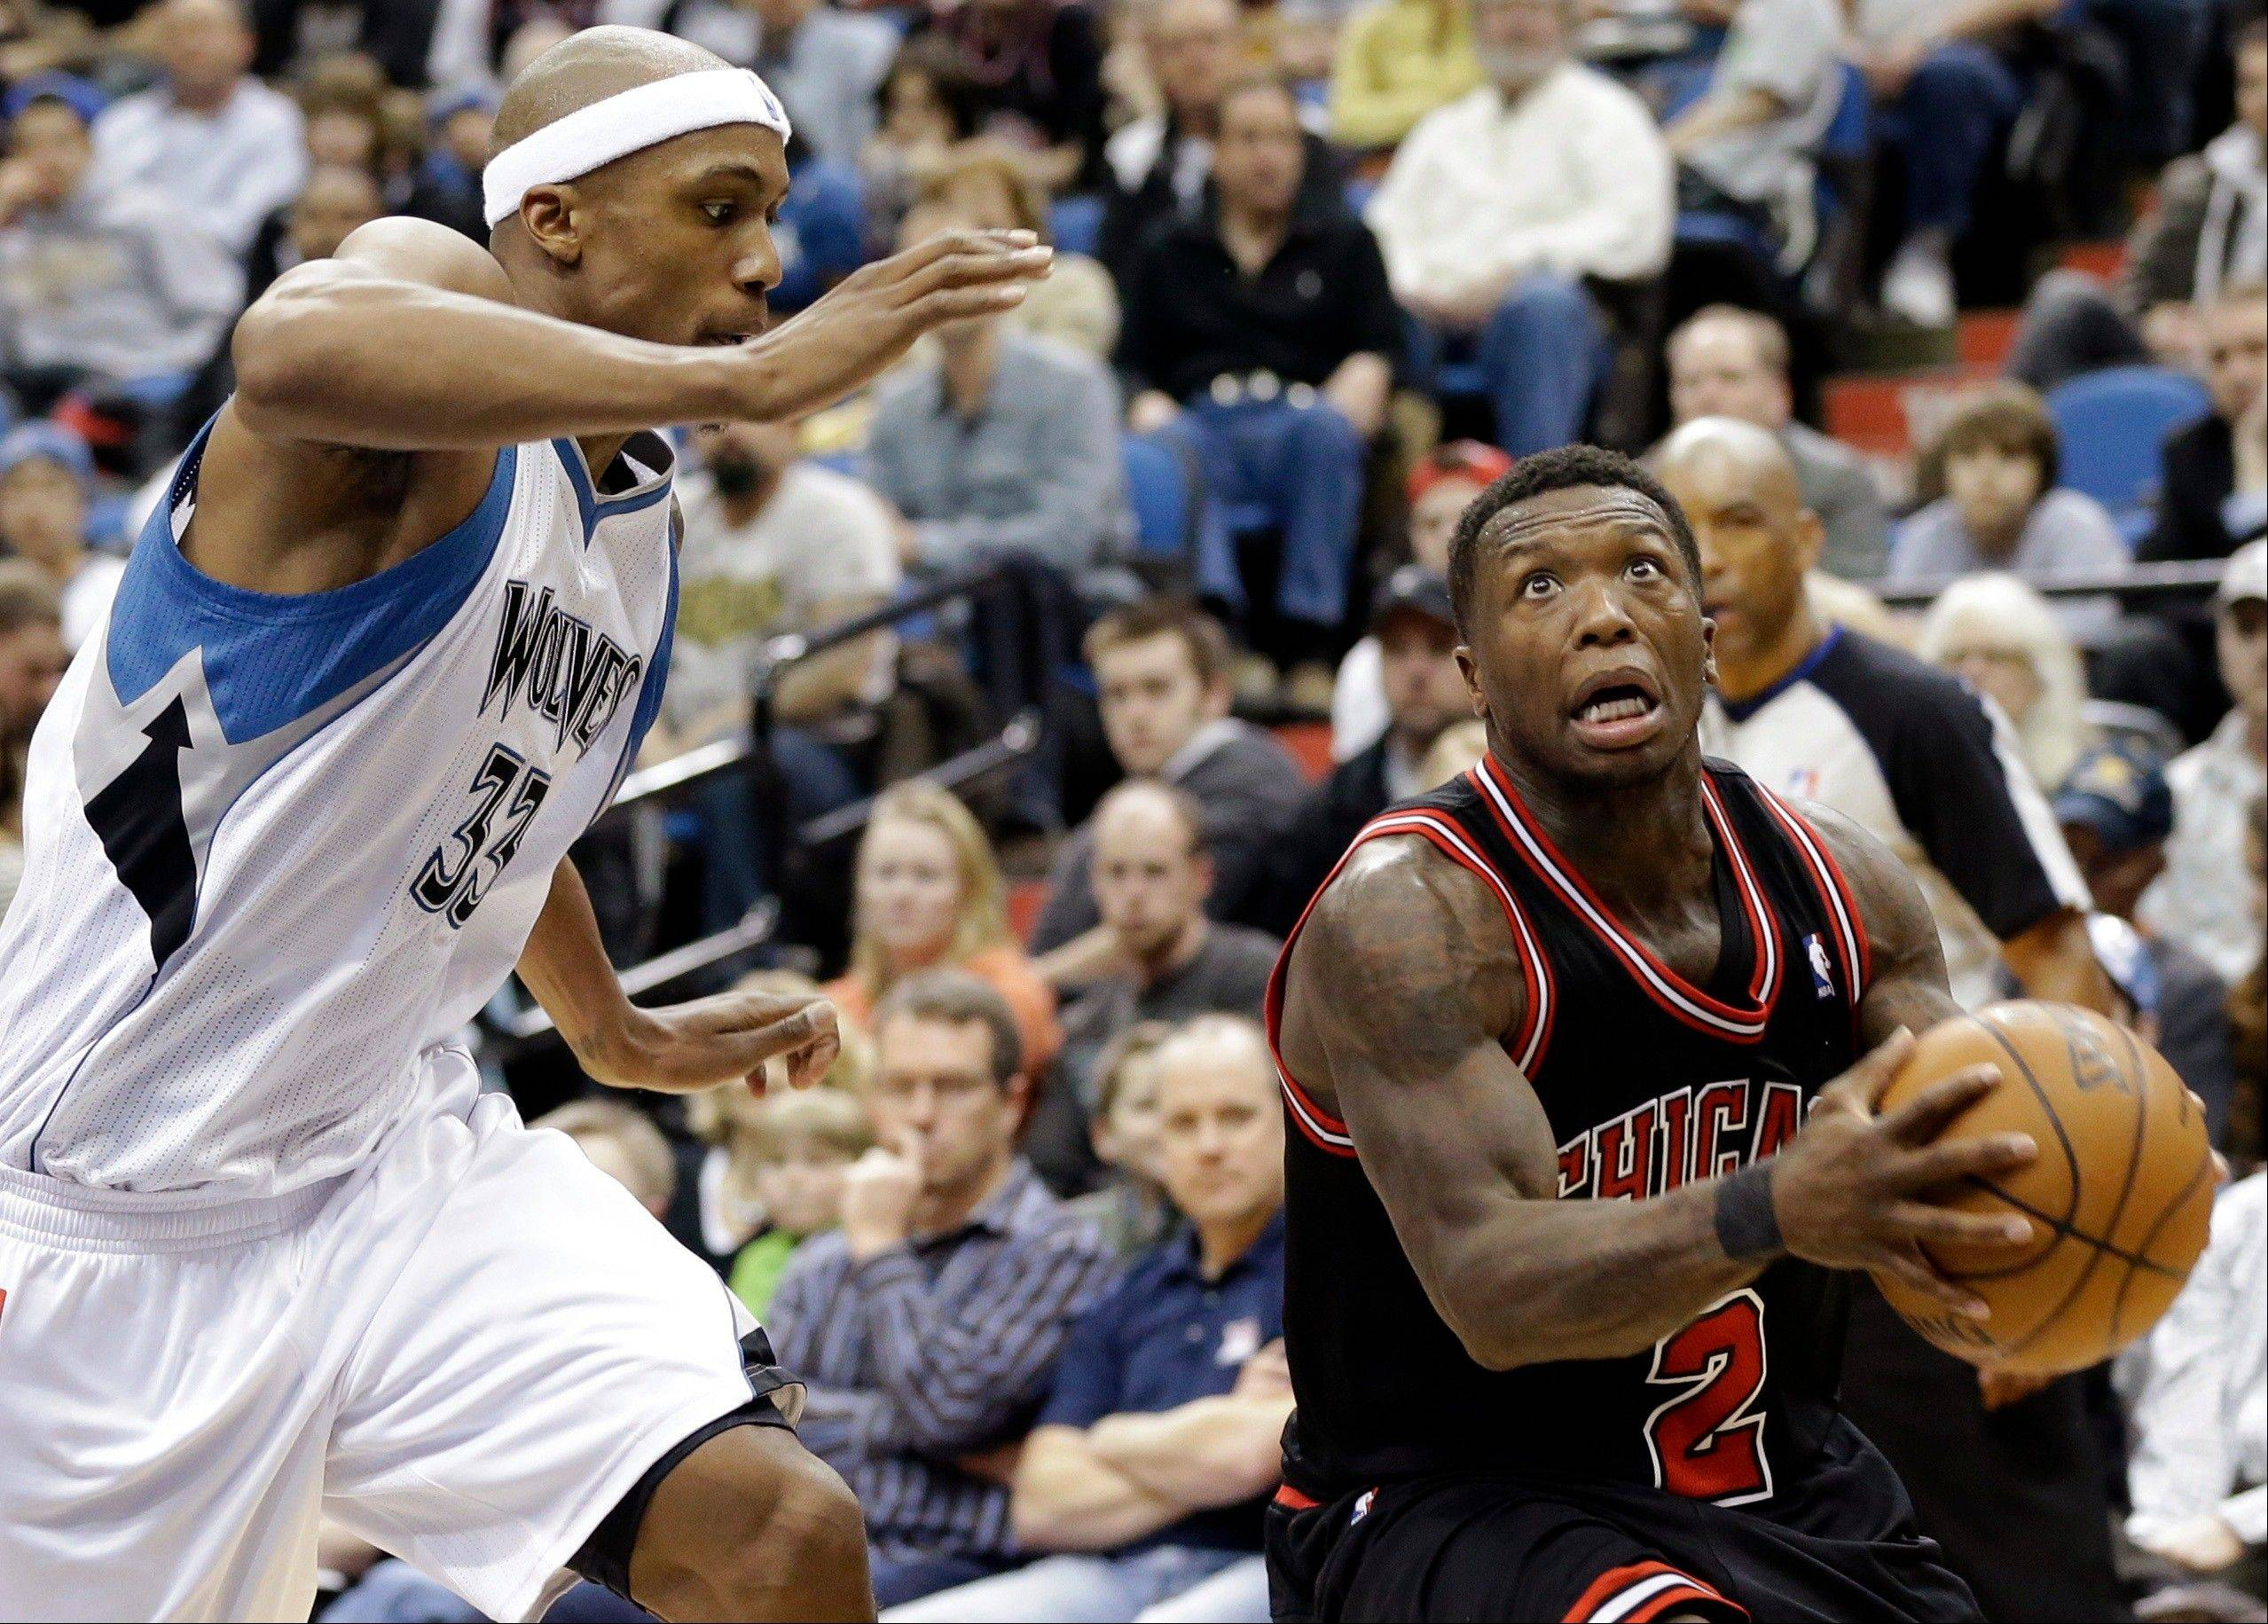 Chicago Bulls� Nate Robinson, right, drives to the basket as Minnesota Timberwolves� Dante Cunningham pursues in the second half of an NBA basketball game, Sunday, March 24, 2013, in Minneapolis. The Bulls won 104-97.